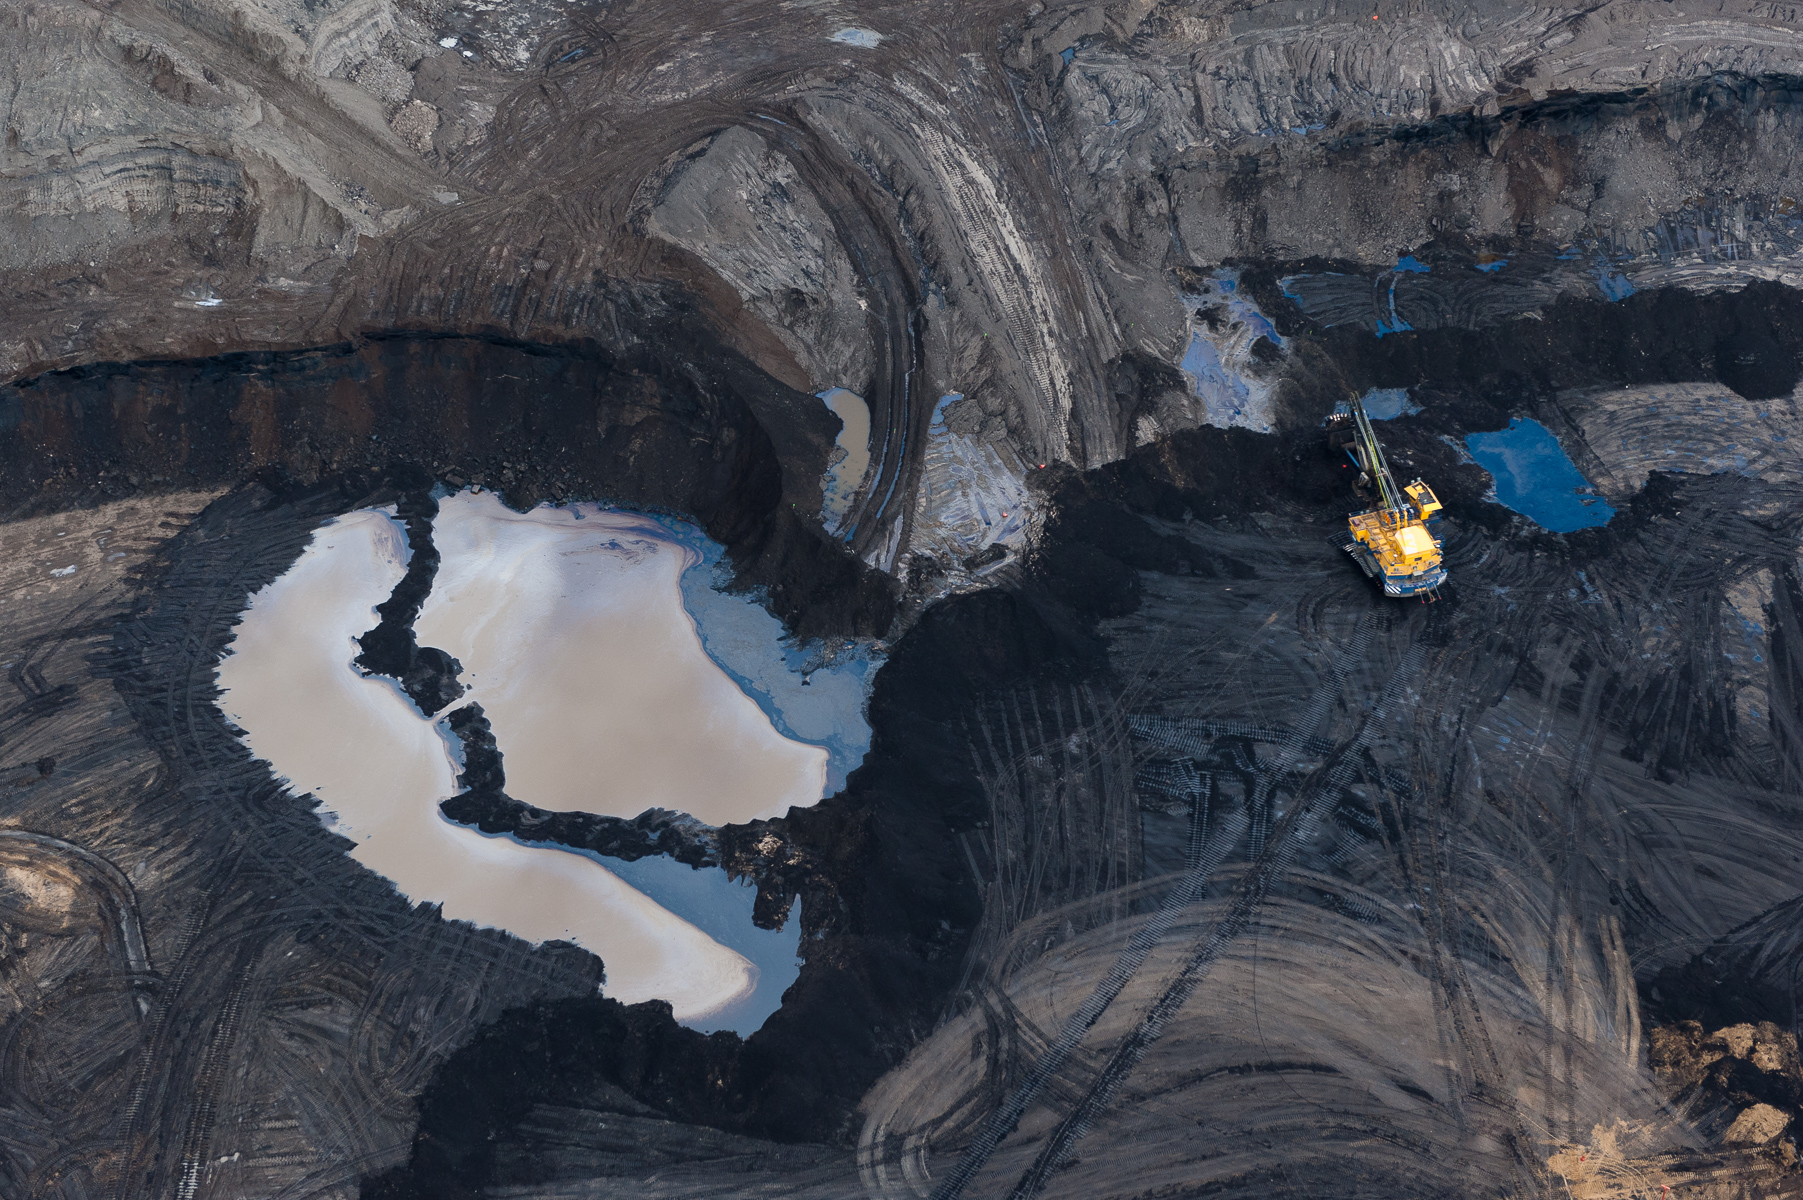 At the edge of an 80-meter deep mine, a massive tar sands machine is dwarfed by the surrounding landscape. The mines, machinery, and trucks of the Alberta Tar Sands were the inspiration for Avatar's Edmonton-born art director's vision of the mining operation on Pandora.